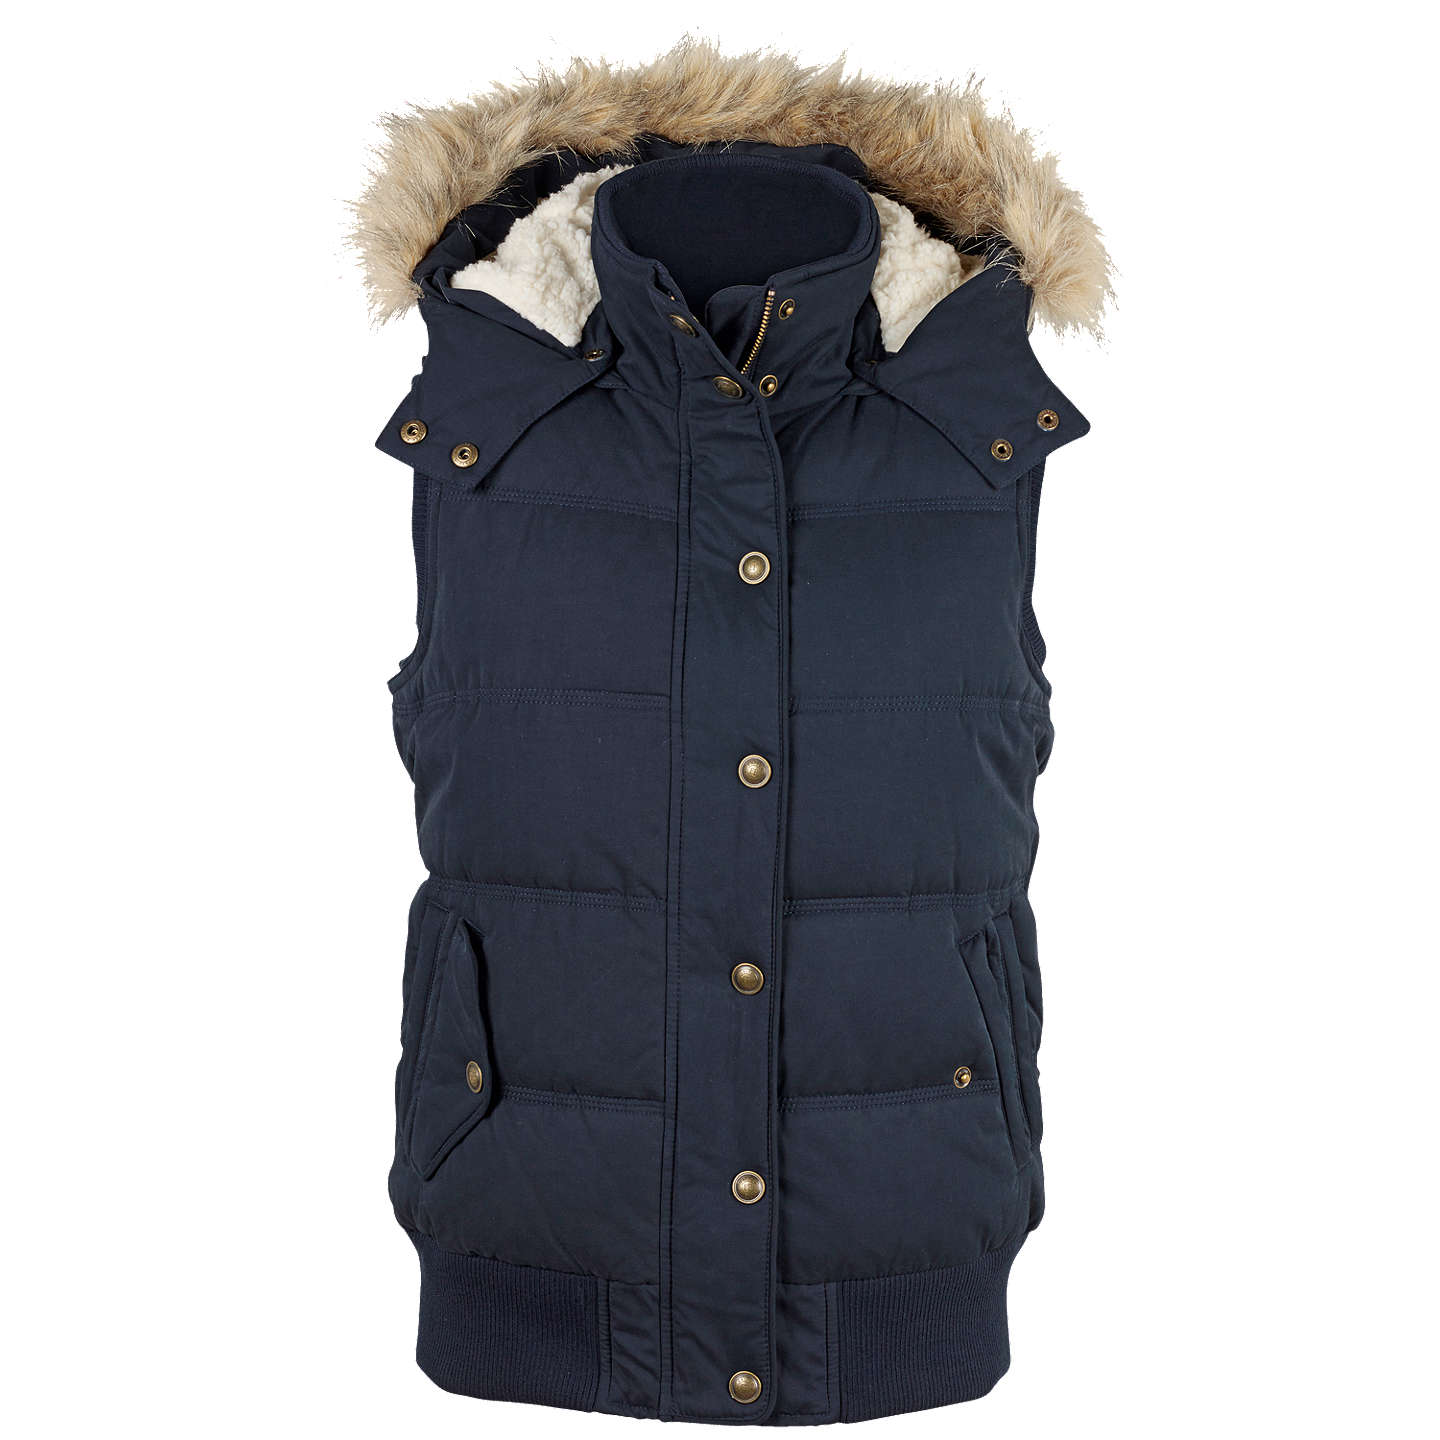 Under 50 Dollars Womens Heritage Outdoot Gilet Fat Face Clearance 100% Authentic High Quality For Sale Real Sale Online Genuine in0UF9Ce9c